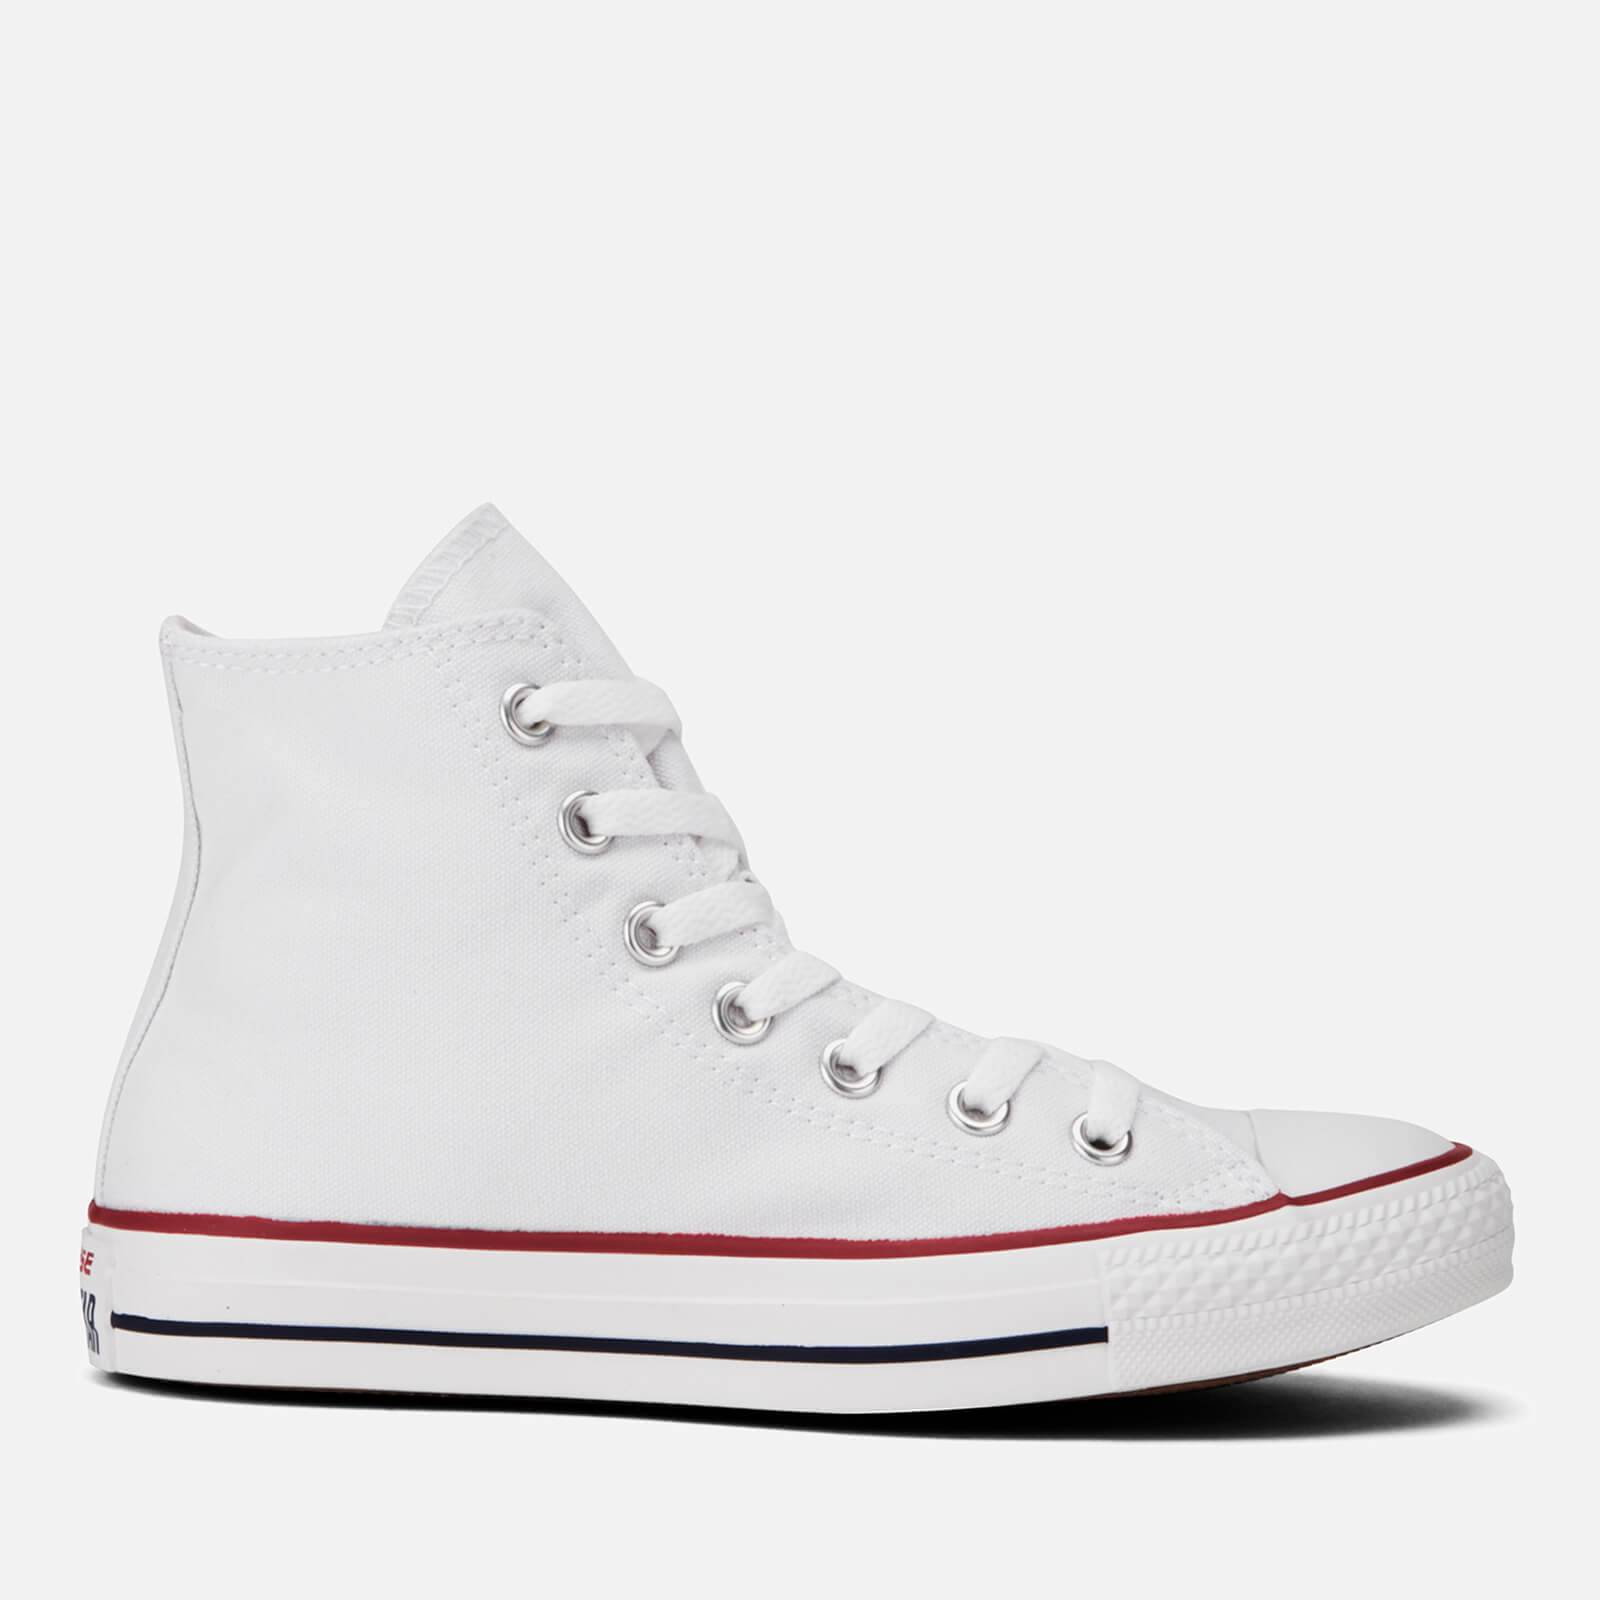 Converse Chuck Taylor All Star Canvas Hi-Top Trainers - Optical White - UK 10